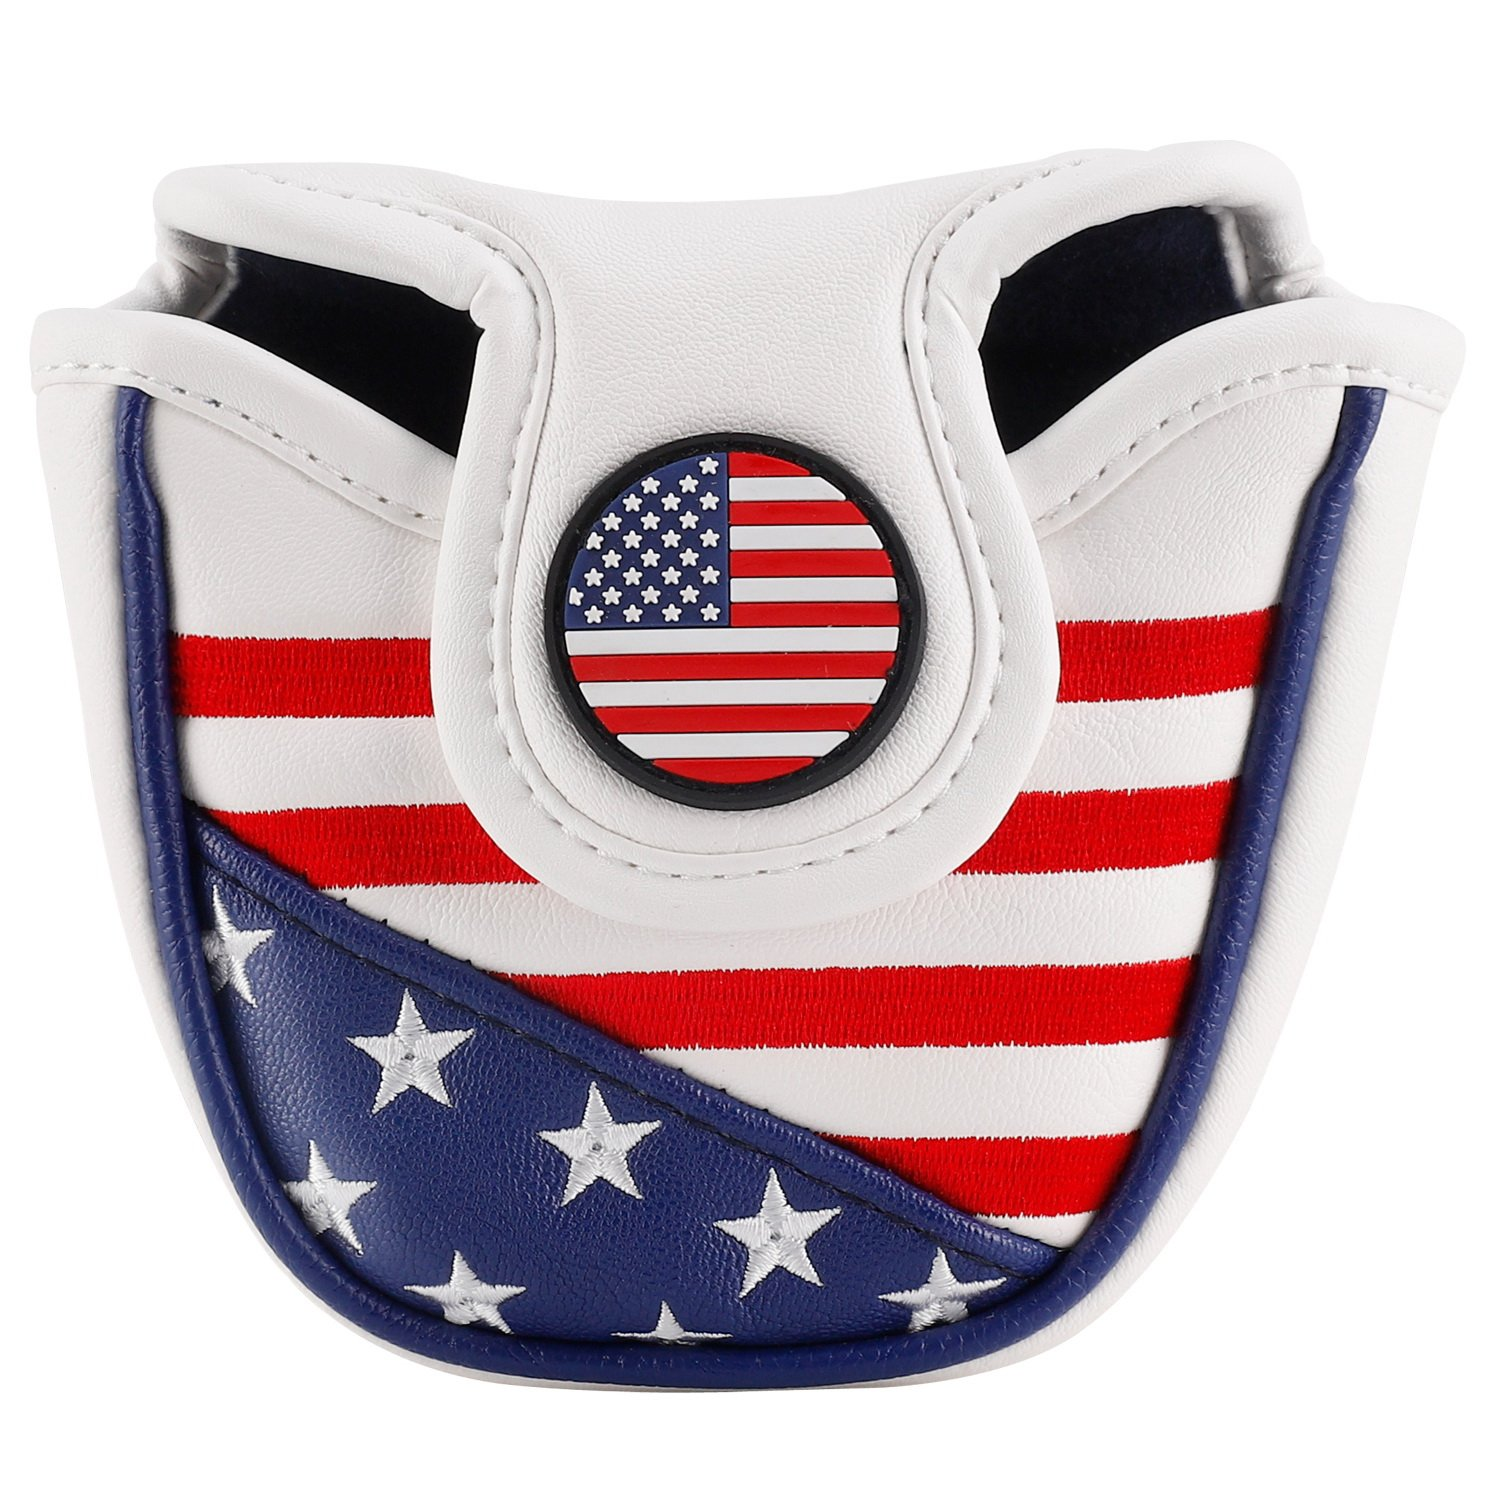 montela golf USA America Mallet Putter Cover Fit #7 Putter by montela golf (Image #1)